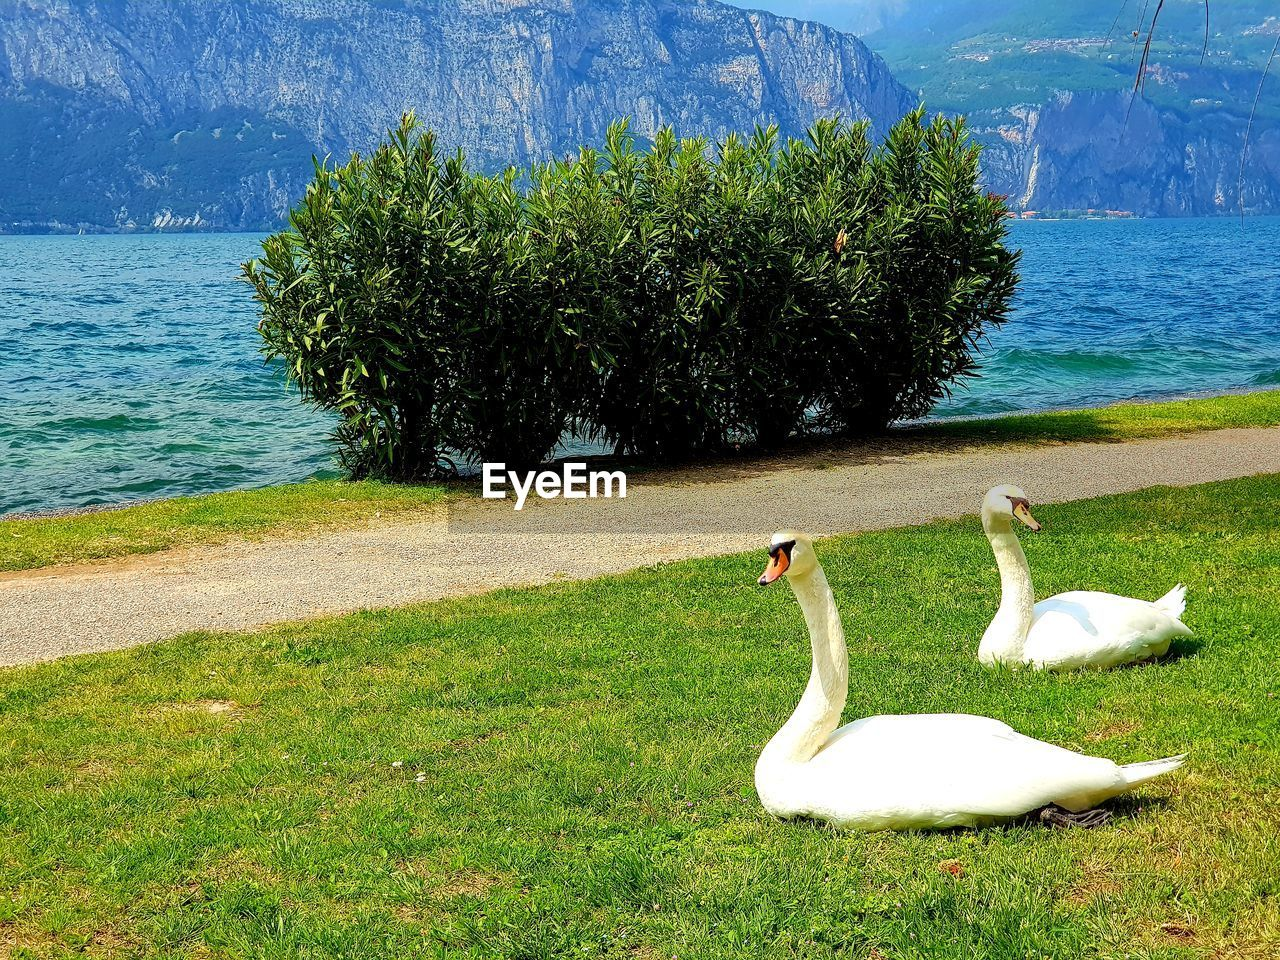 VIEW OF SWAN ON SHORE